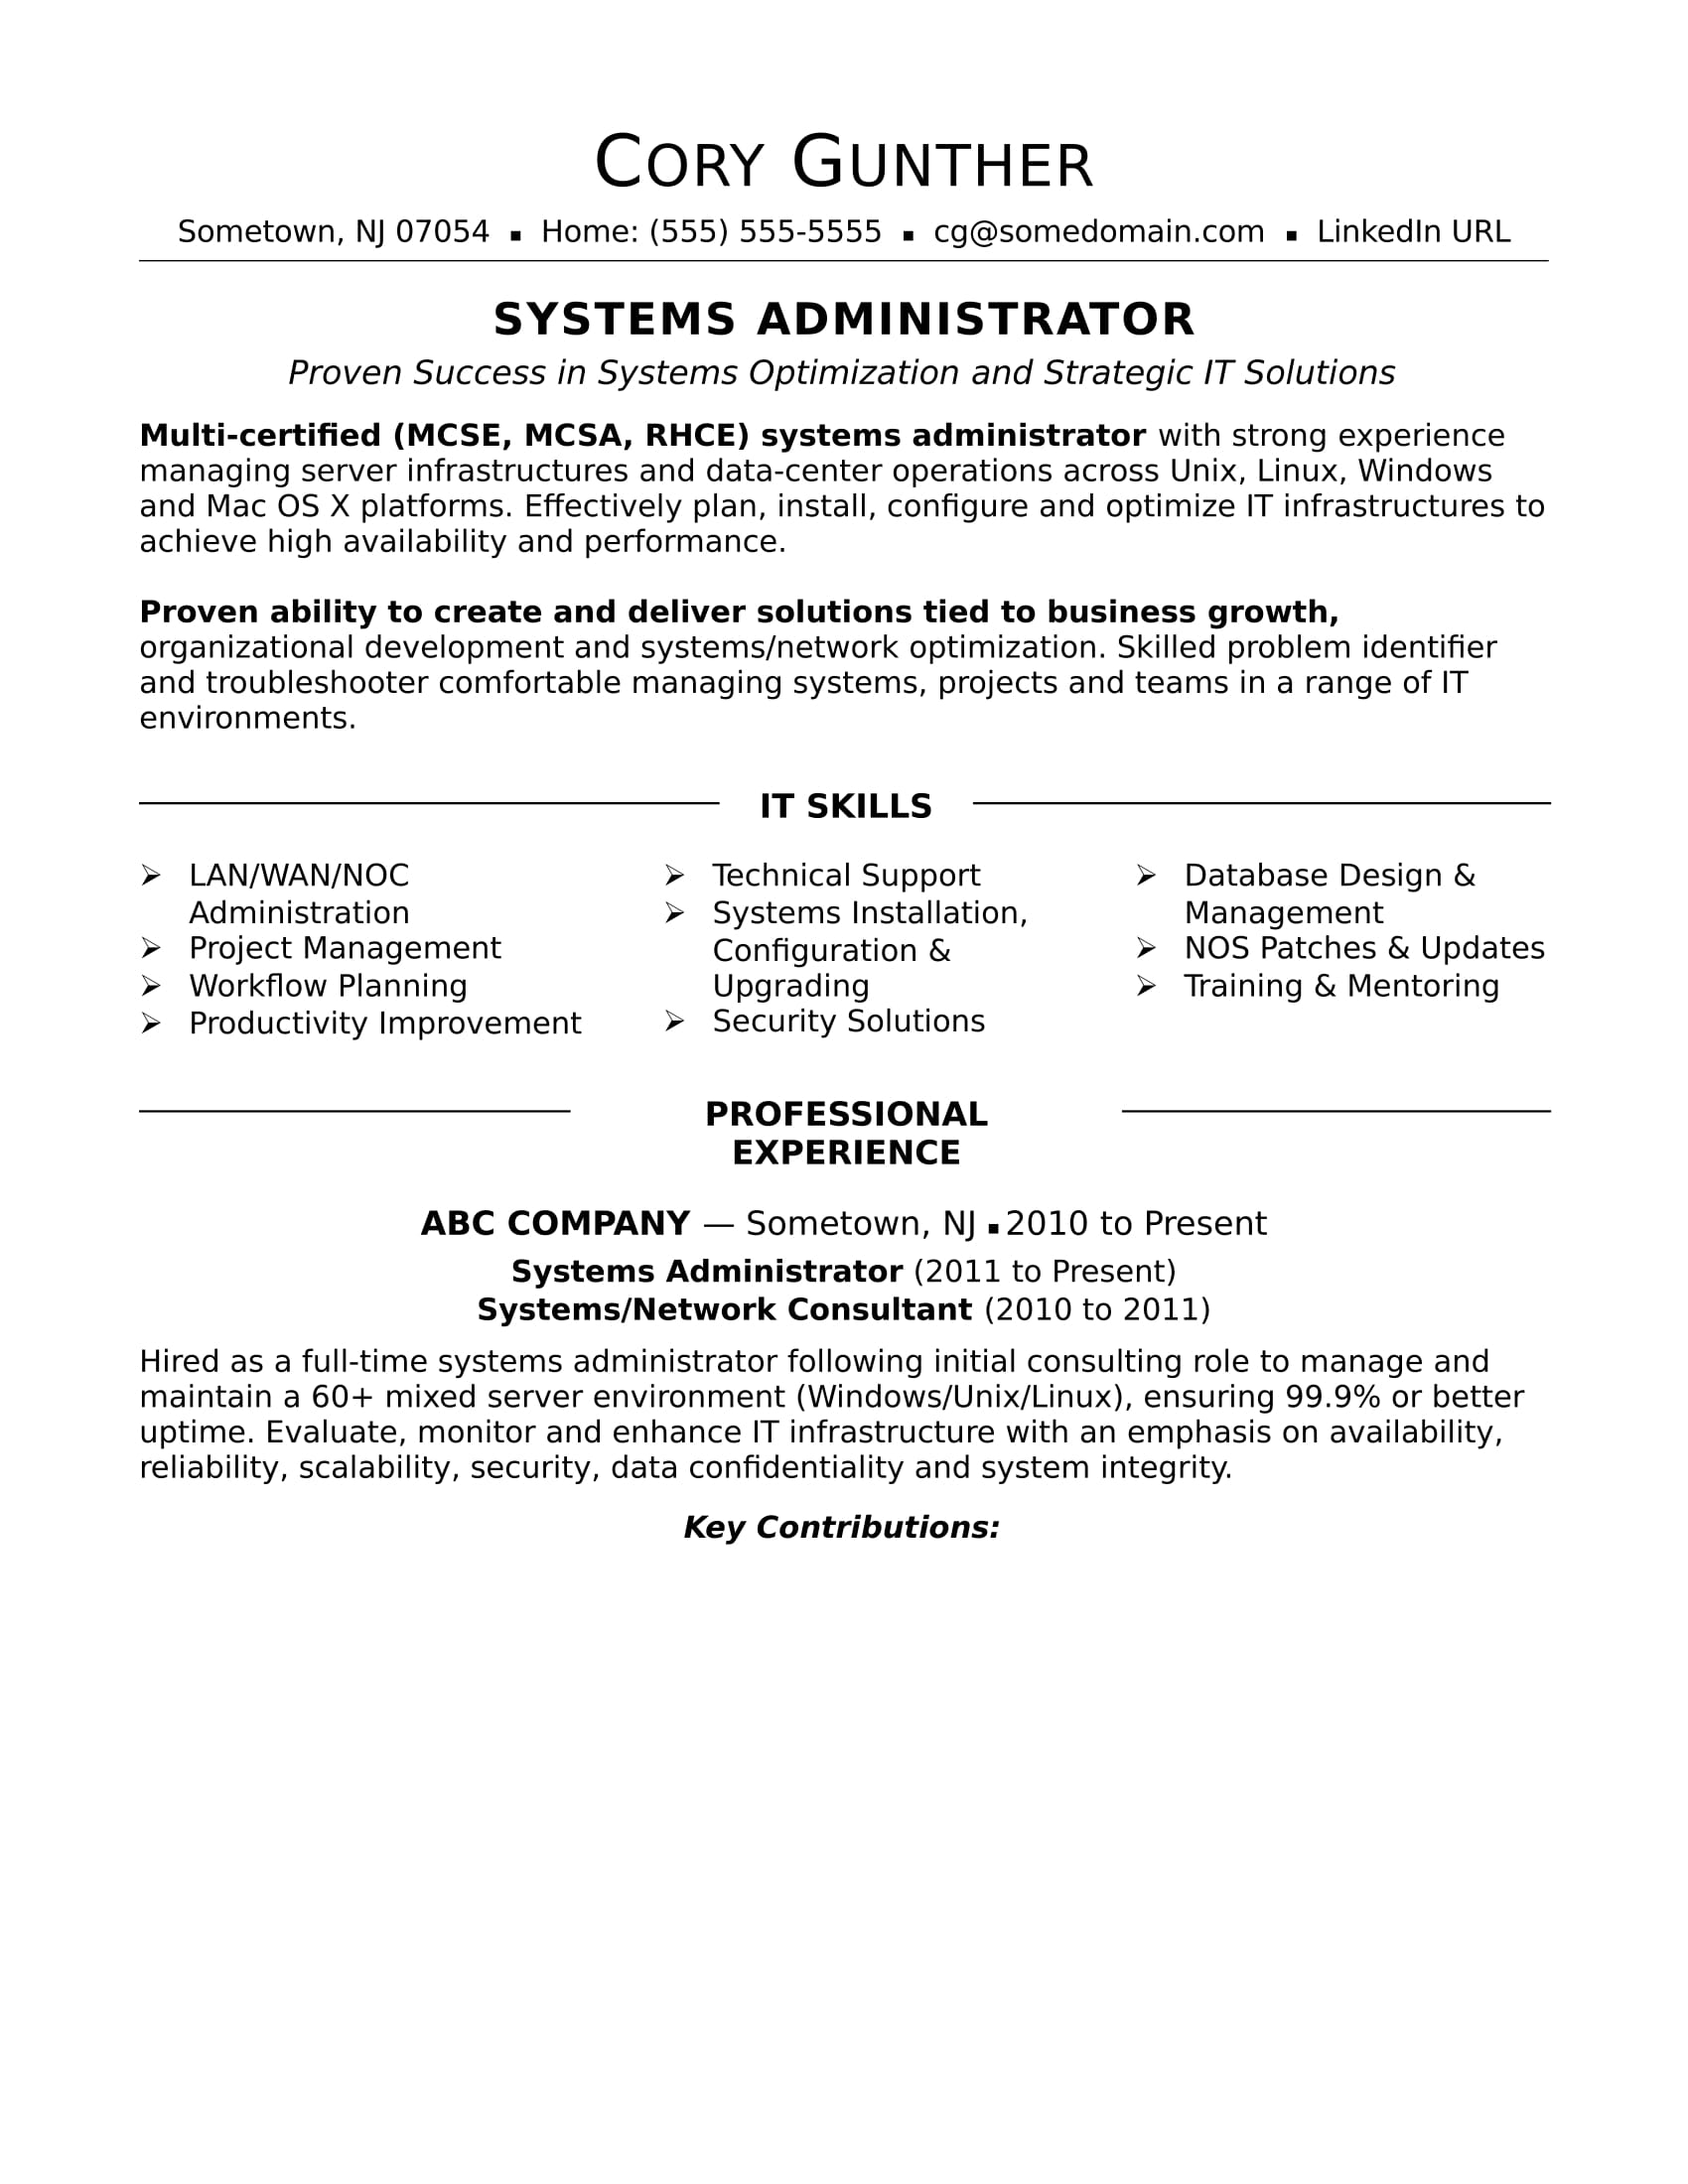 sample resume for an experienced systems administrator monster social media consultant Resume Social Media Consultant Resume